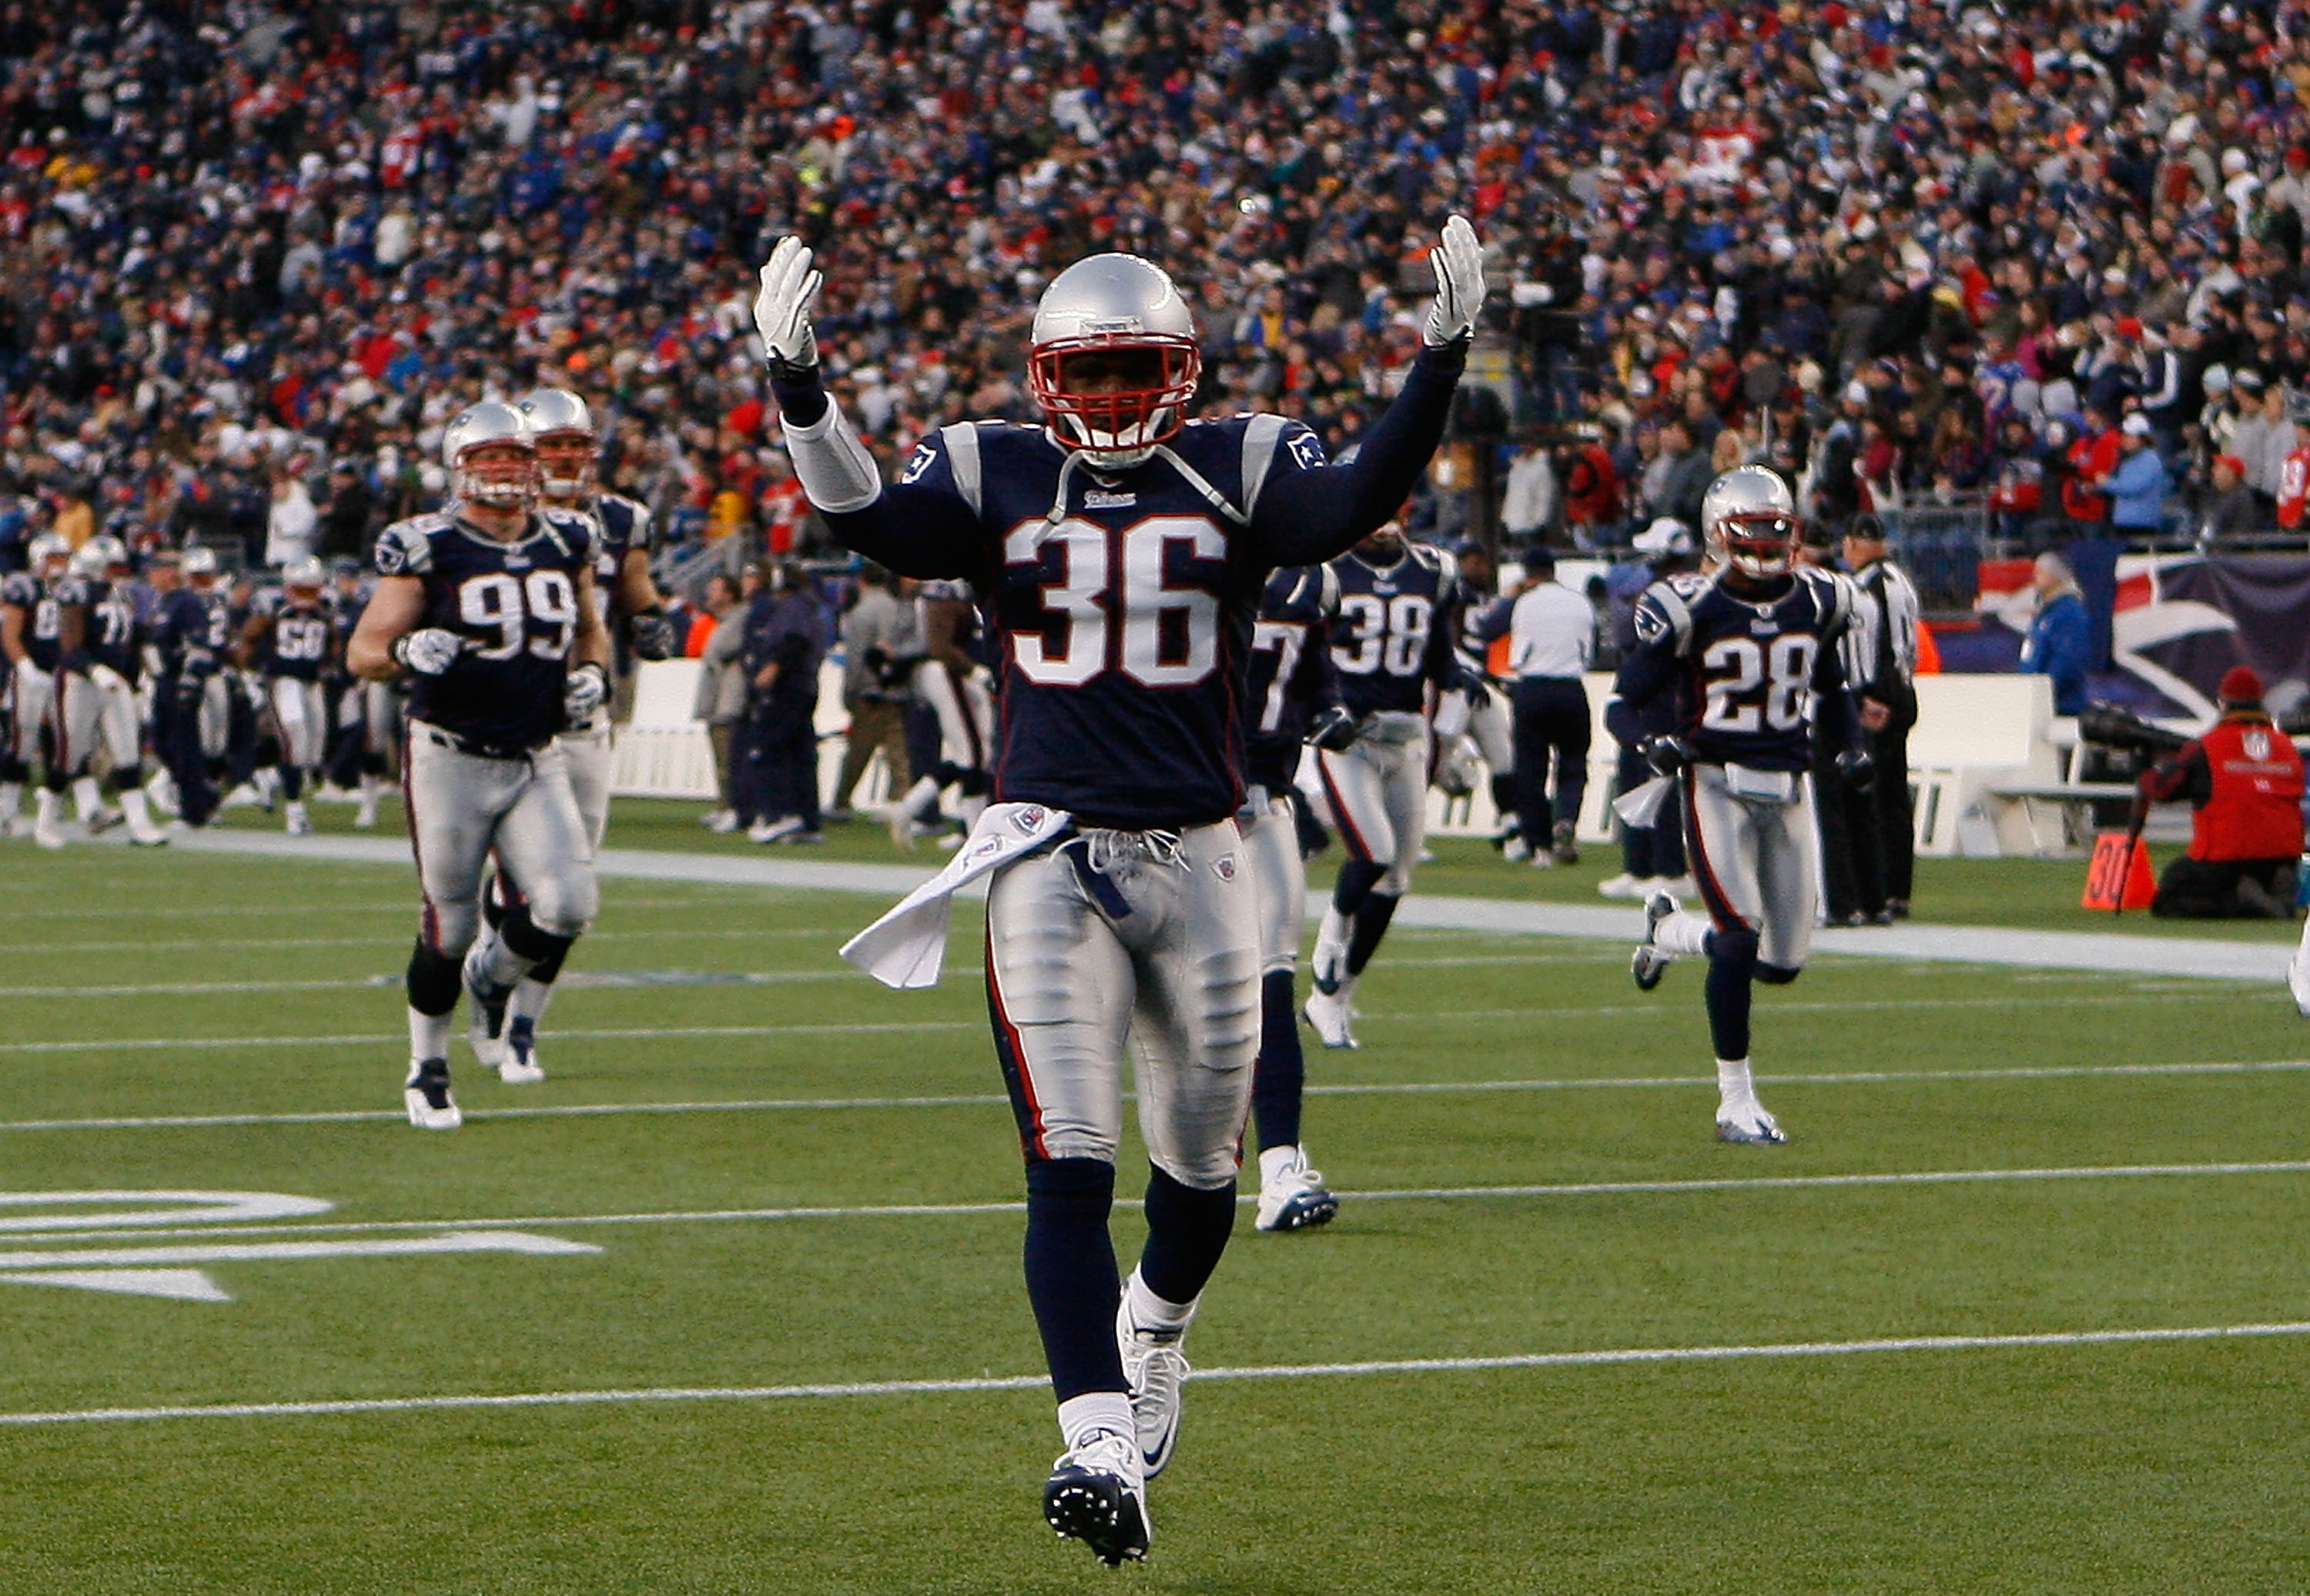 FOXBORO, MA - NOVEMBER 21: James Sanders #36 of the New England Patriots reacts to fans upon running onto the field before a game against the Indianapolis Colts looks on at Gillette Stadium on November 21, 2010 in Foxboro, Massachusetts. The Patriots won